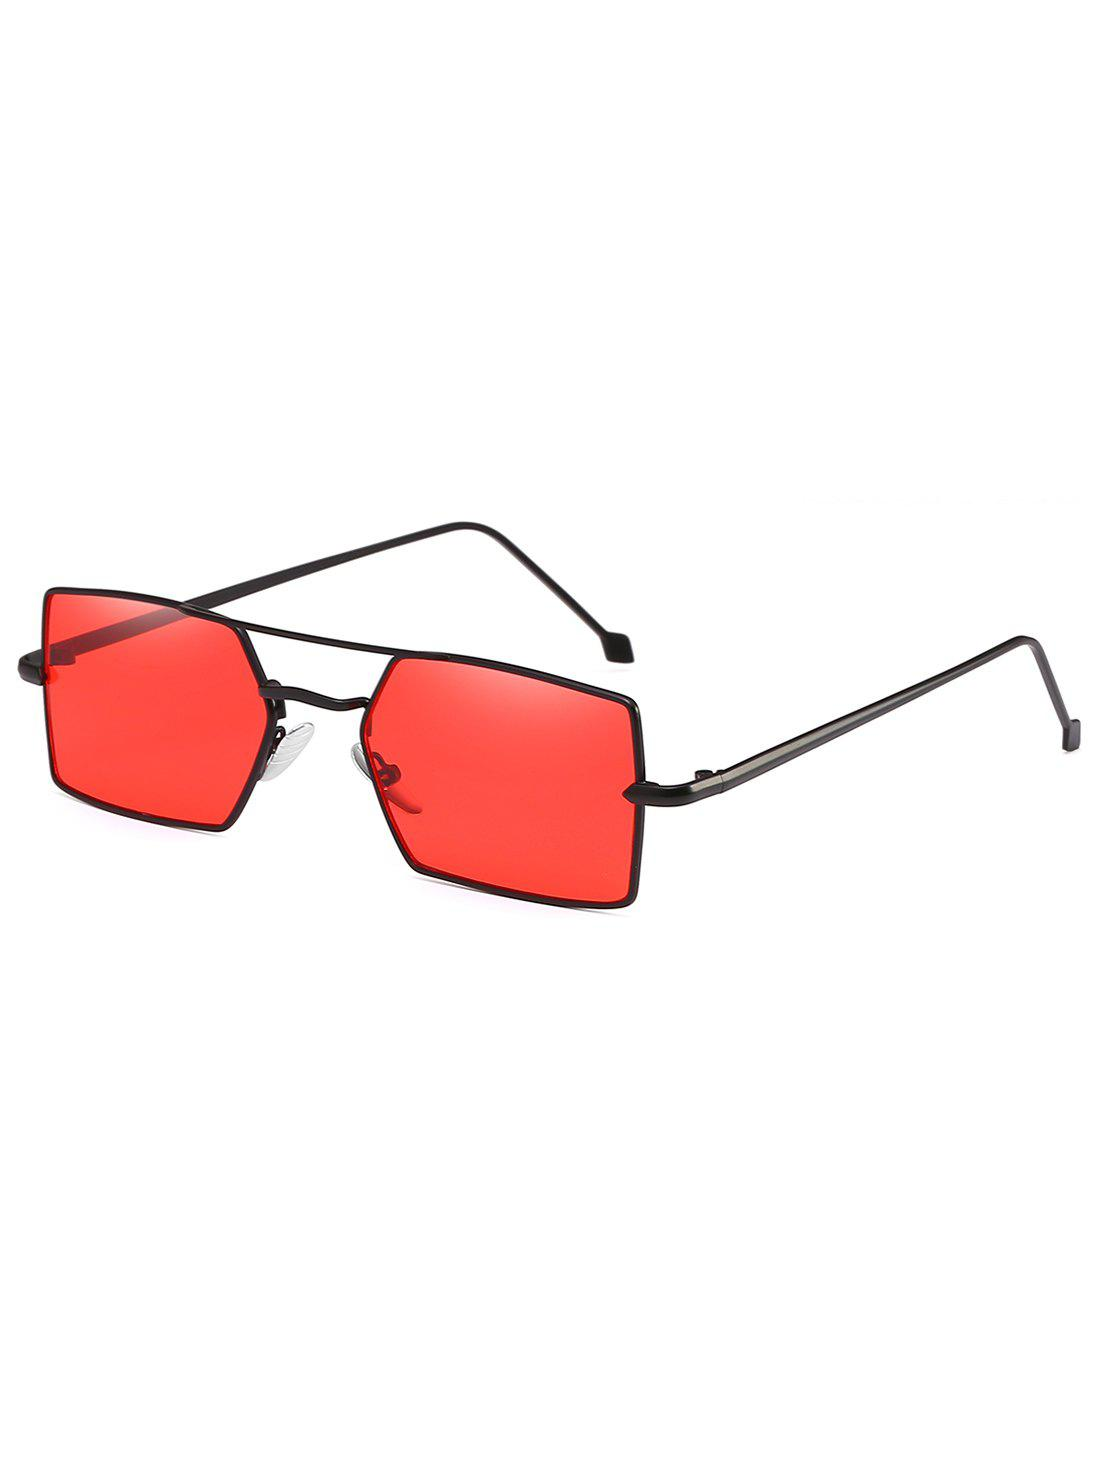 70303d62dc Discount Light Metal Frame Unisex Rectangle Sunglasses